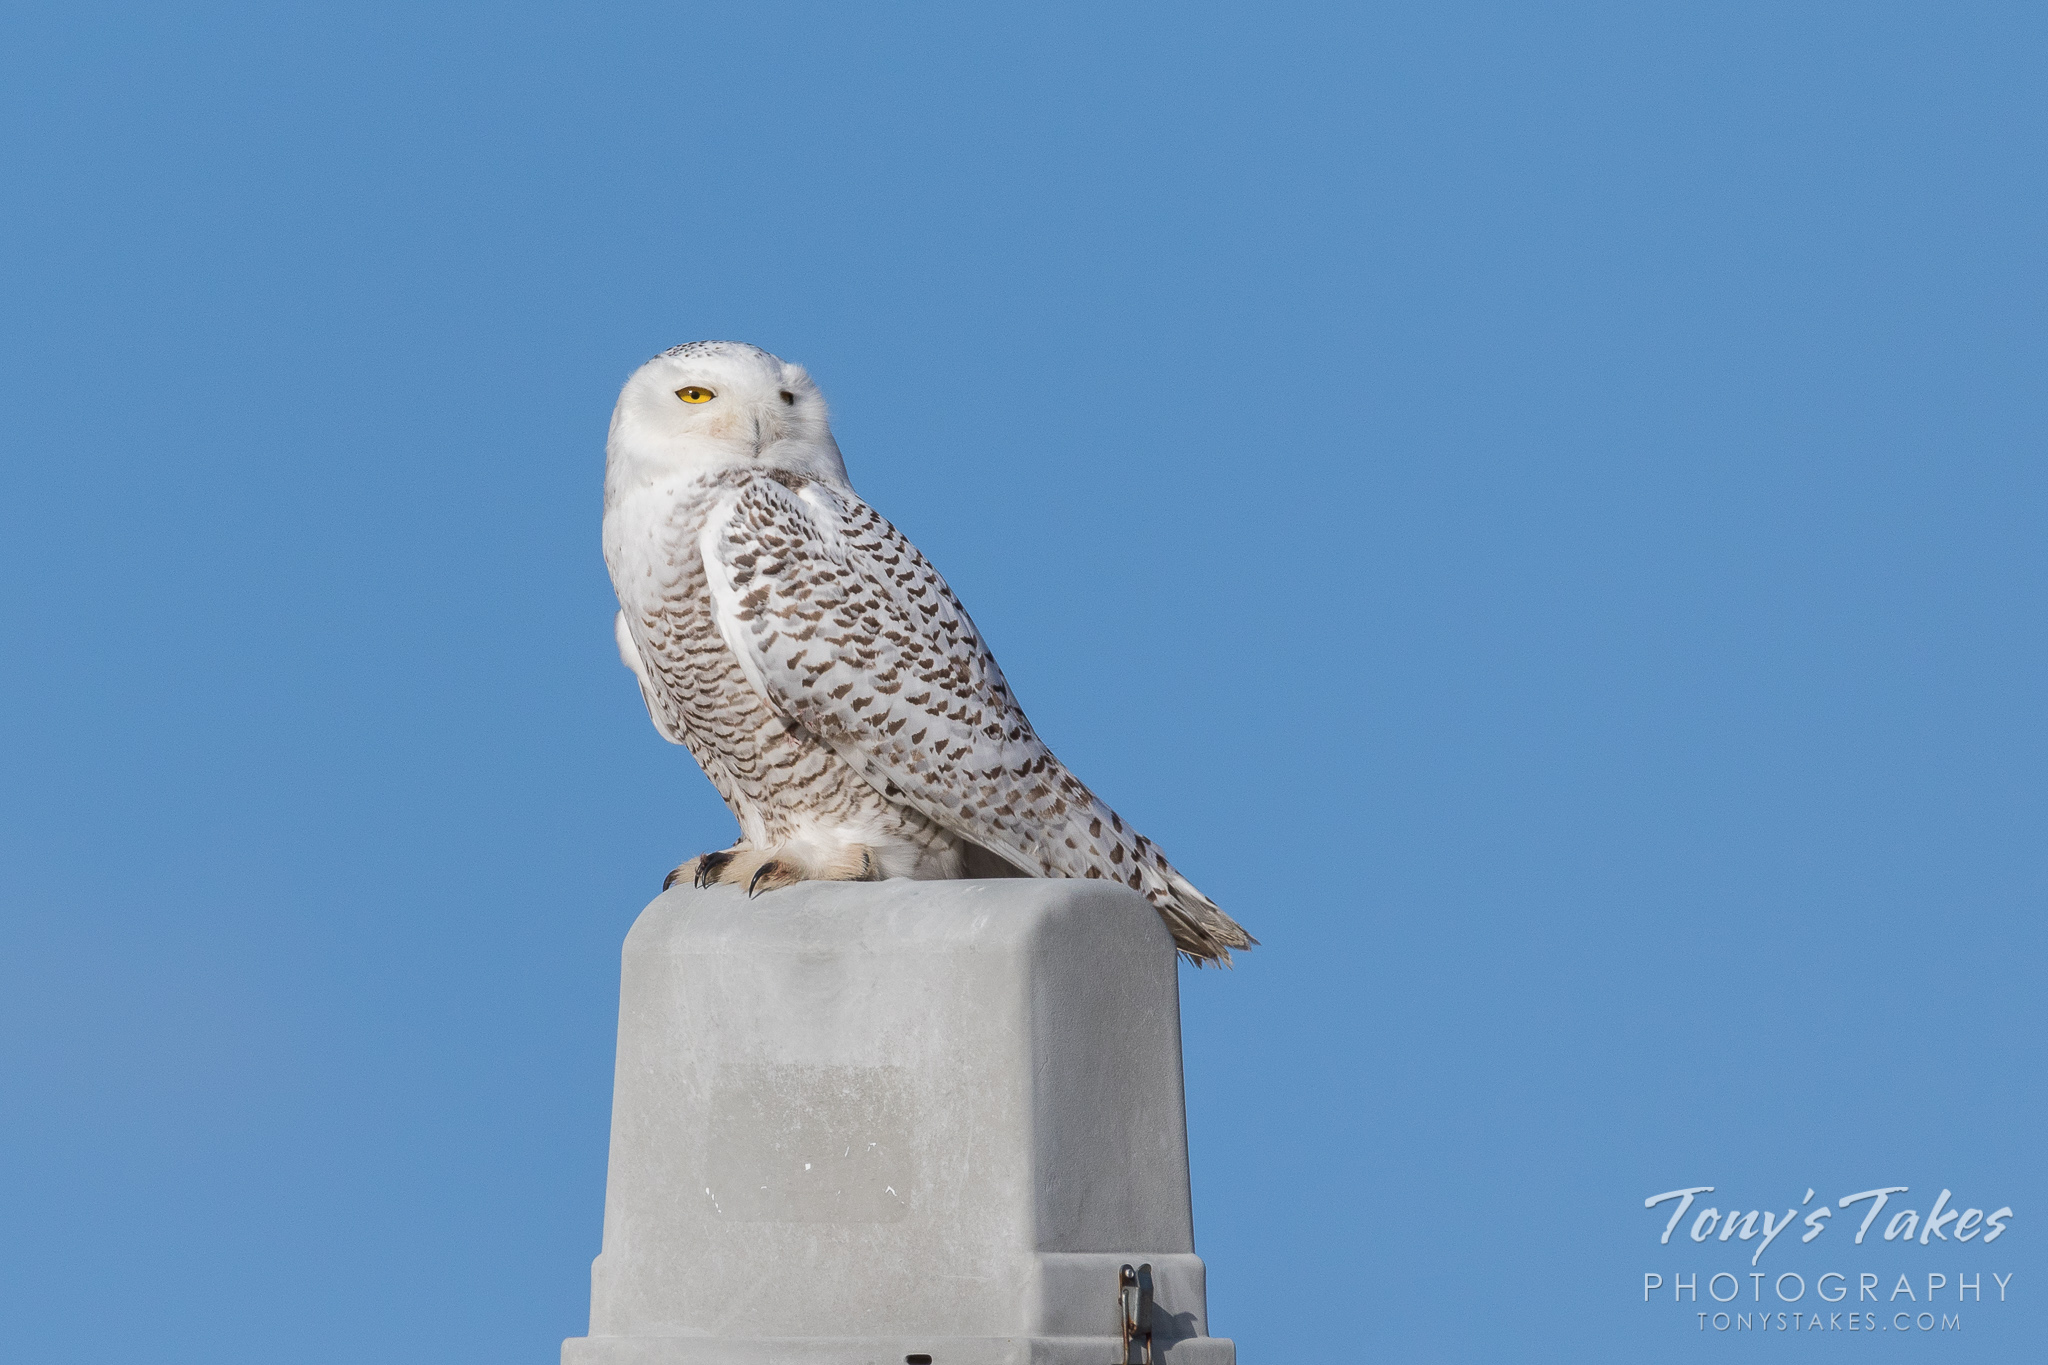 One year ago: Snowy Owl hanging out on the Colorado plains